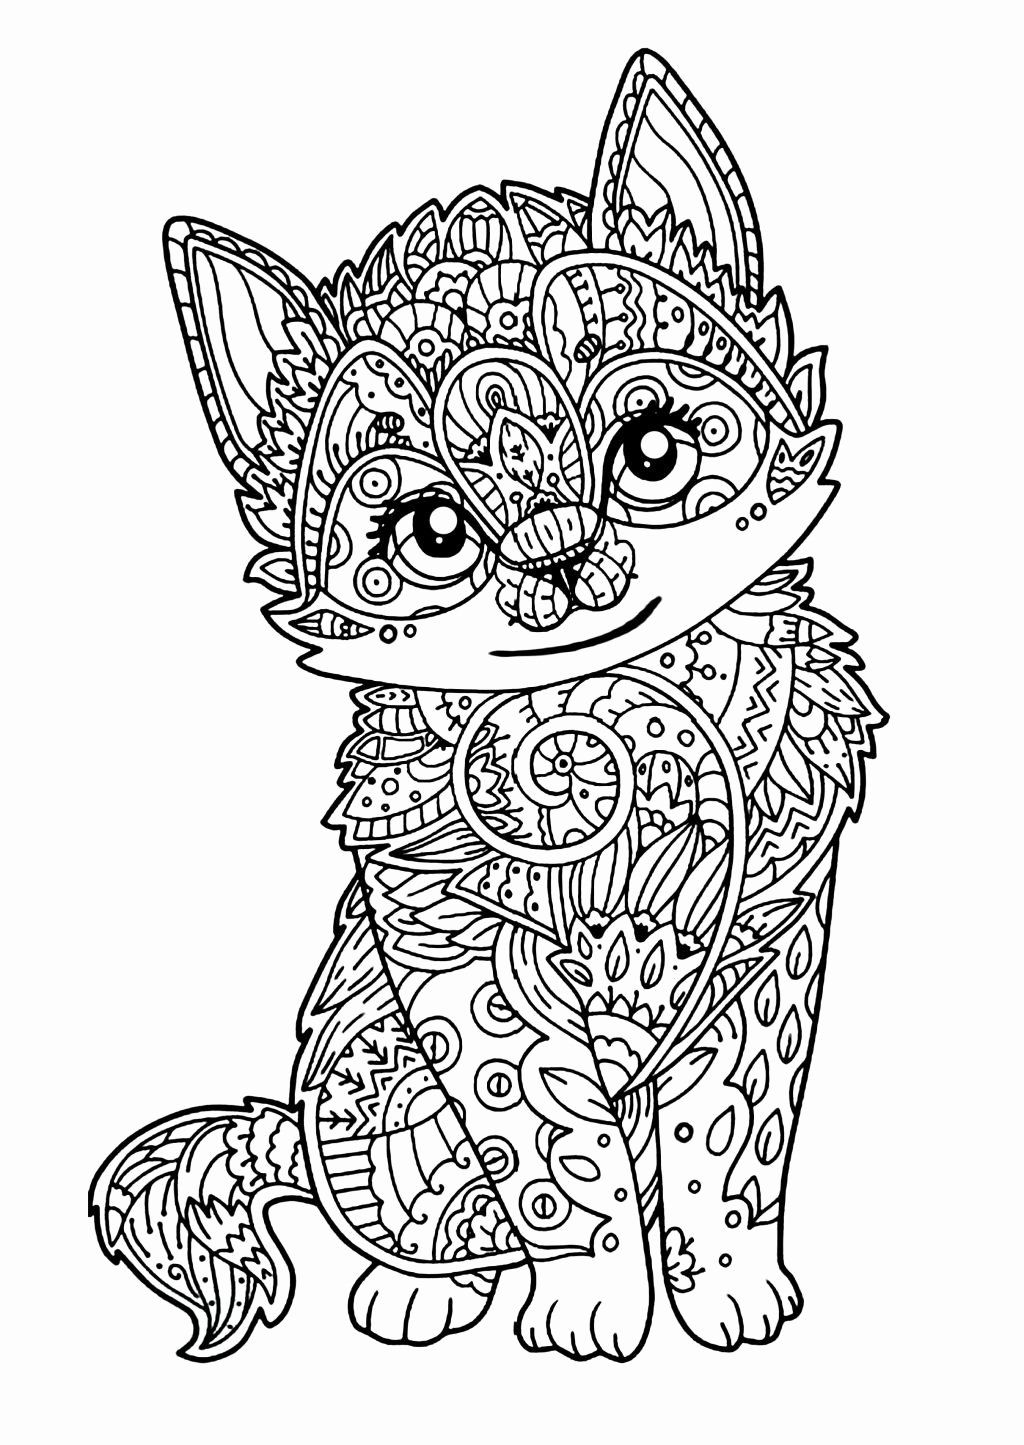 Coloring Pages Animals Adults Unique Elegant Cute Dog And Cat